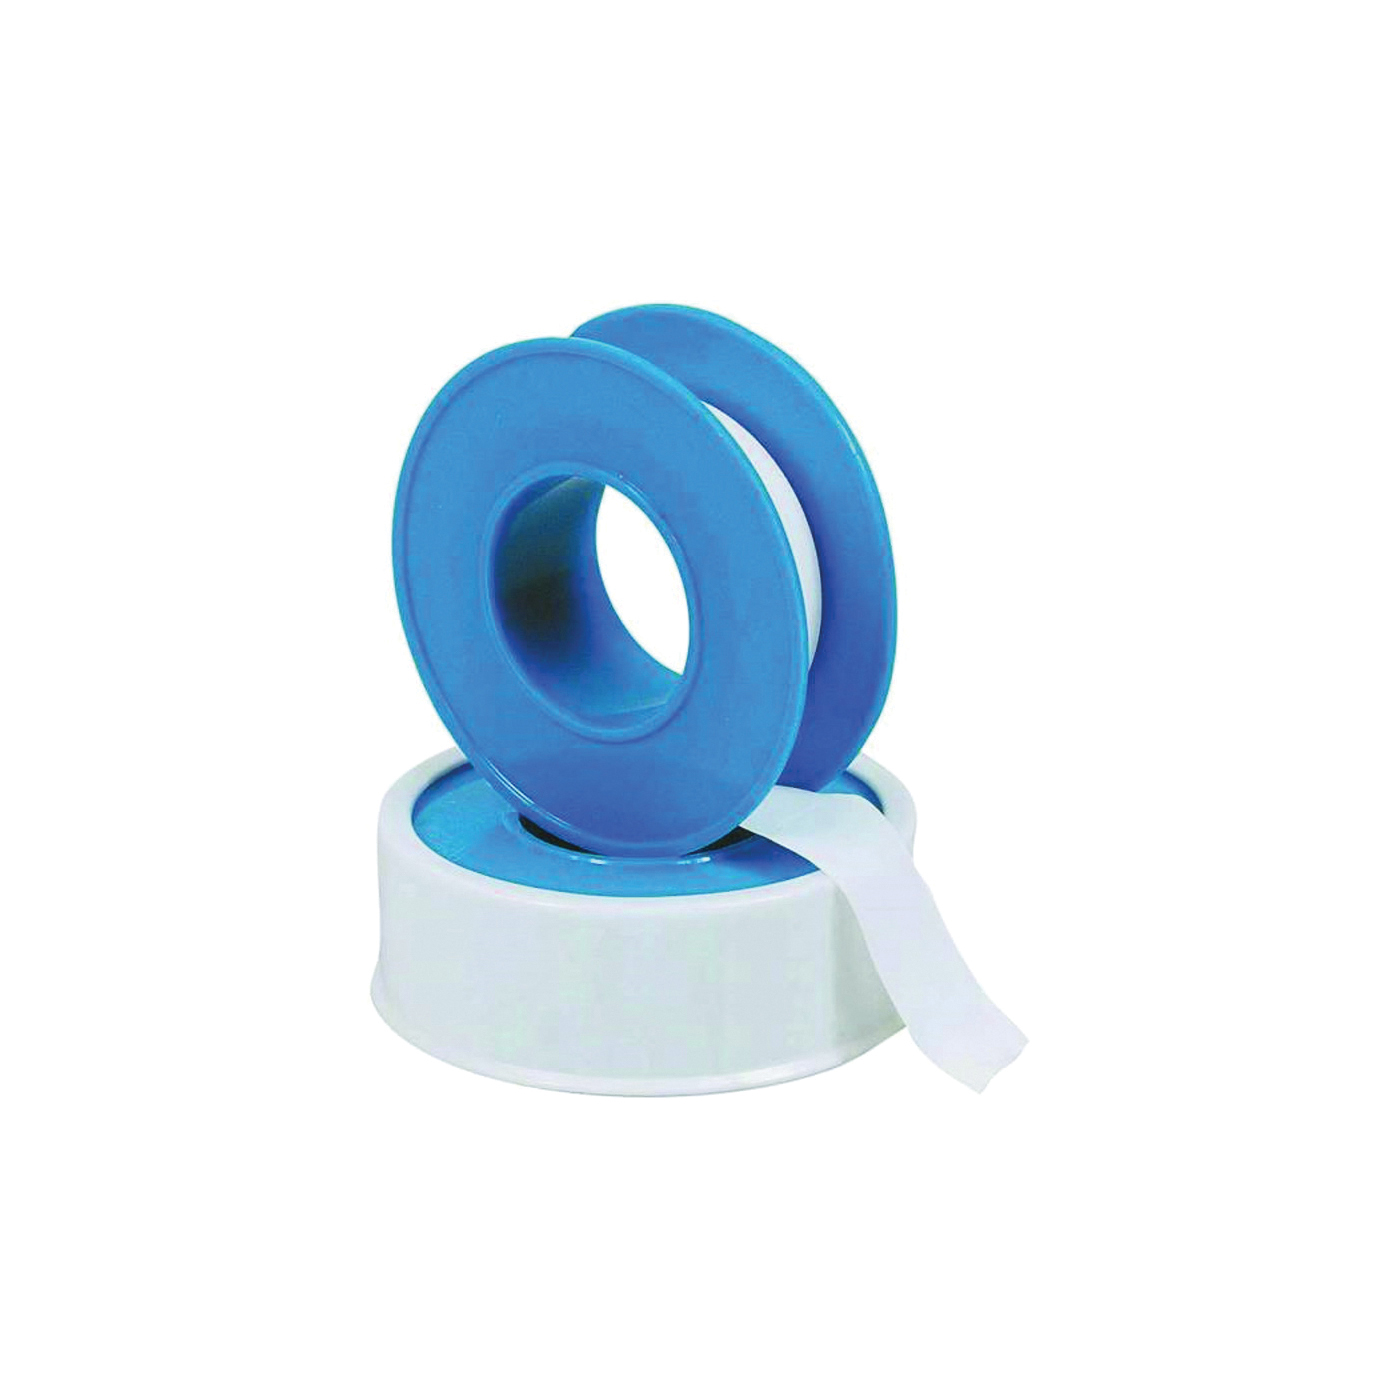 Picture of HARVEY 017400-24 Thread Seal Tape, 520 in L, 1 in W, PTFE, Blue/White